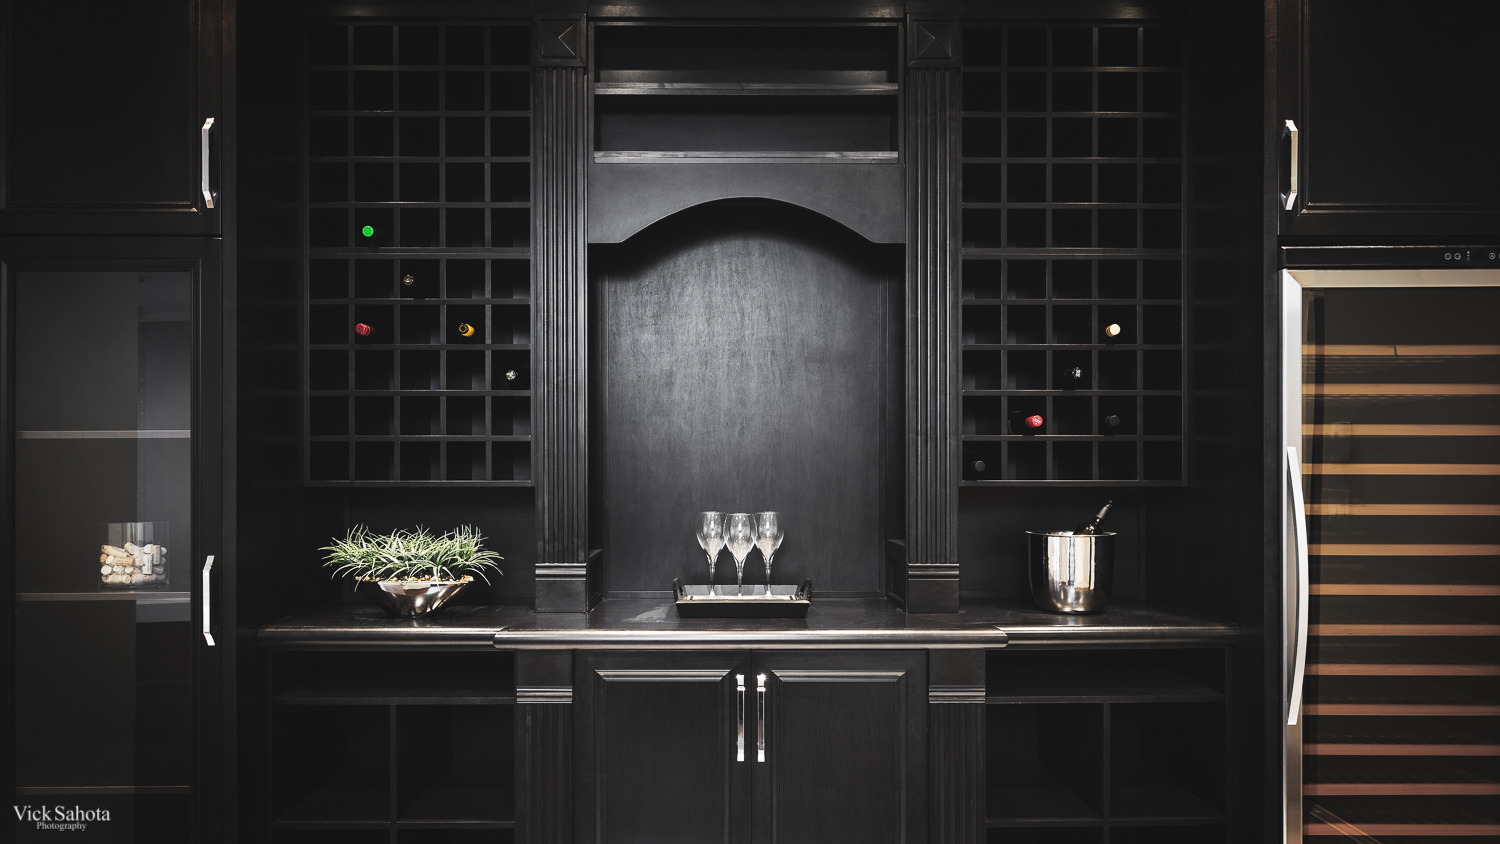 One of my favourite things about this house would have to be the wine rack, it was designed incredible well and looked great.